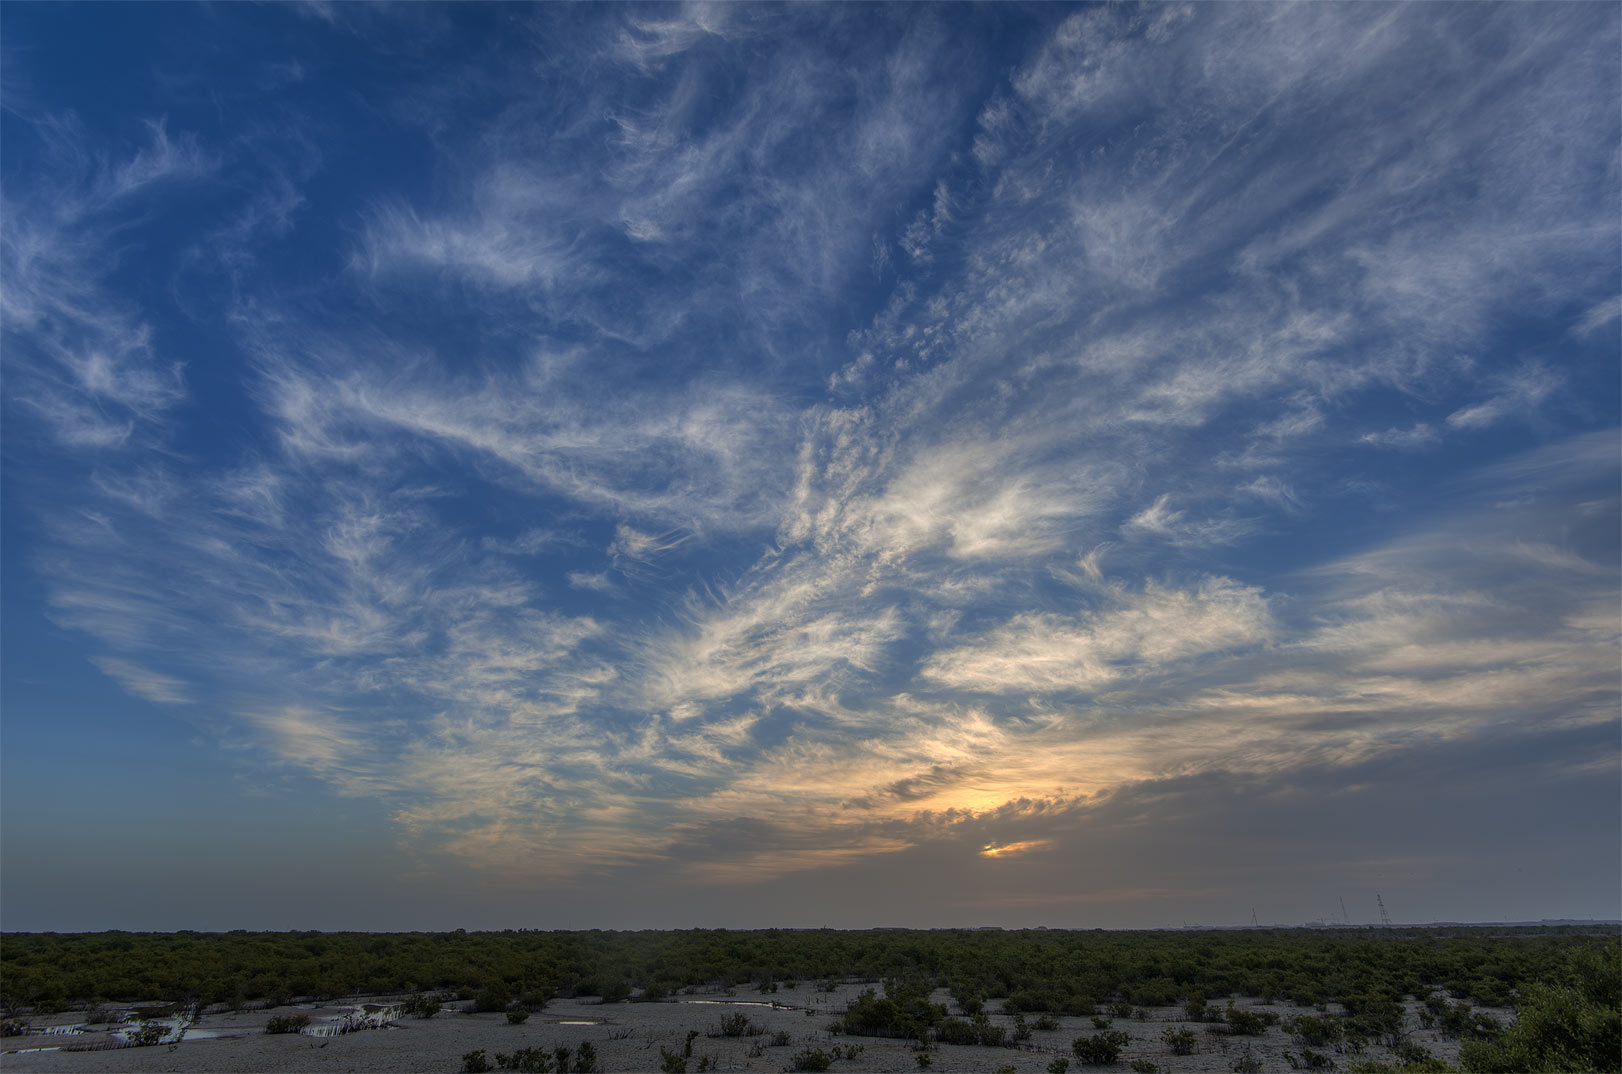 Sunrise over mangrove marsh on Purple Island (Jazirat Bin Ghanim). Al Khor, Qatar